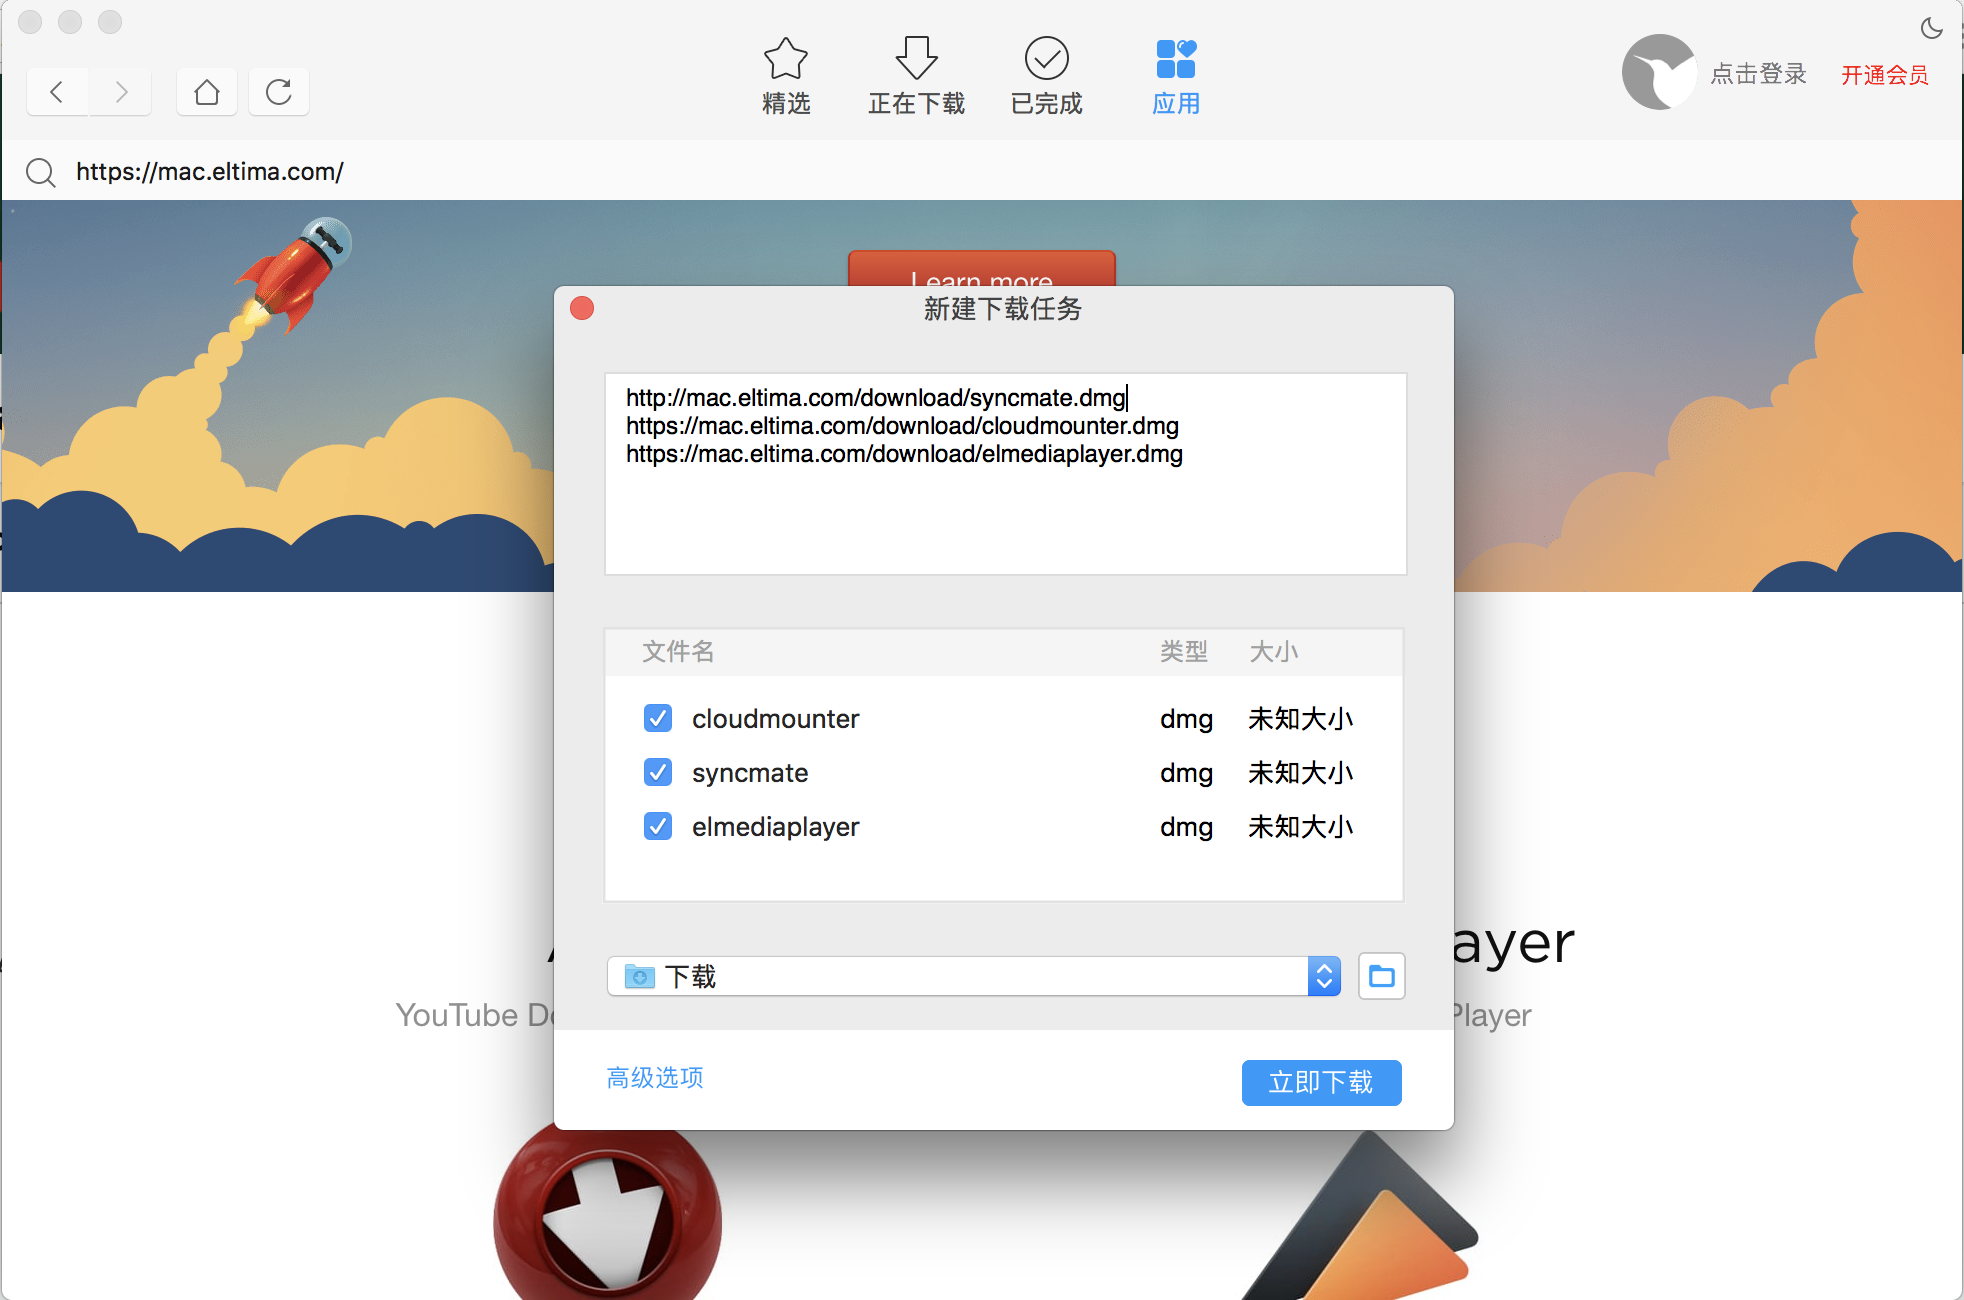 Folx download tool as a Xunlei Thunder alternative for Mac